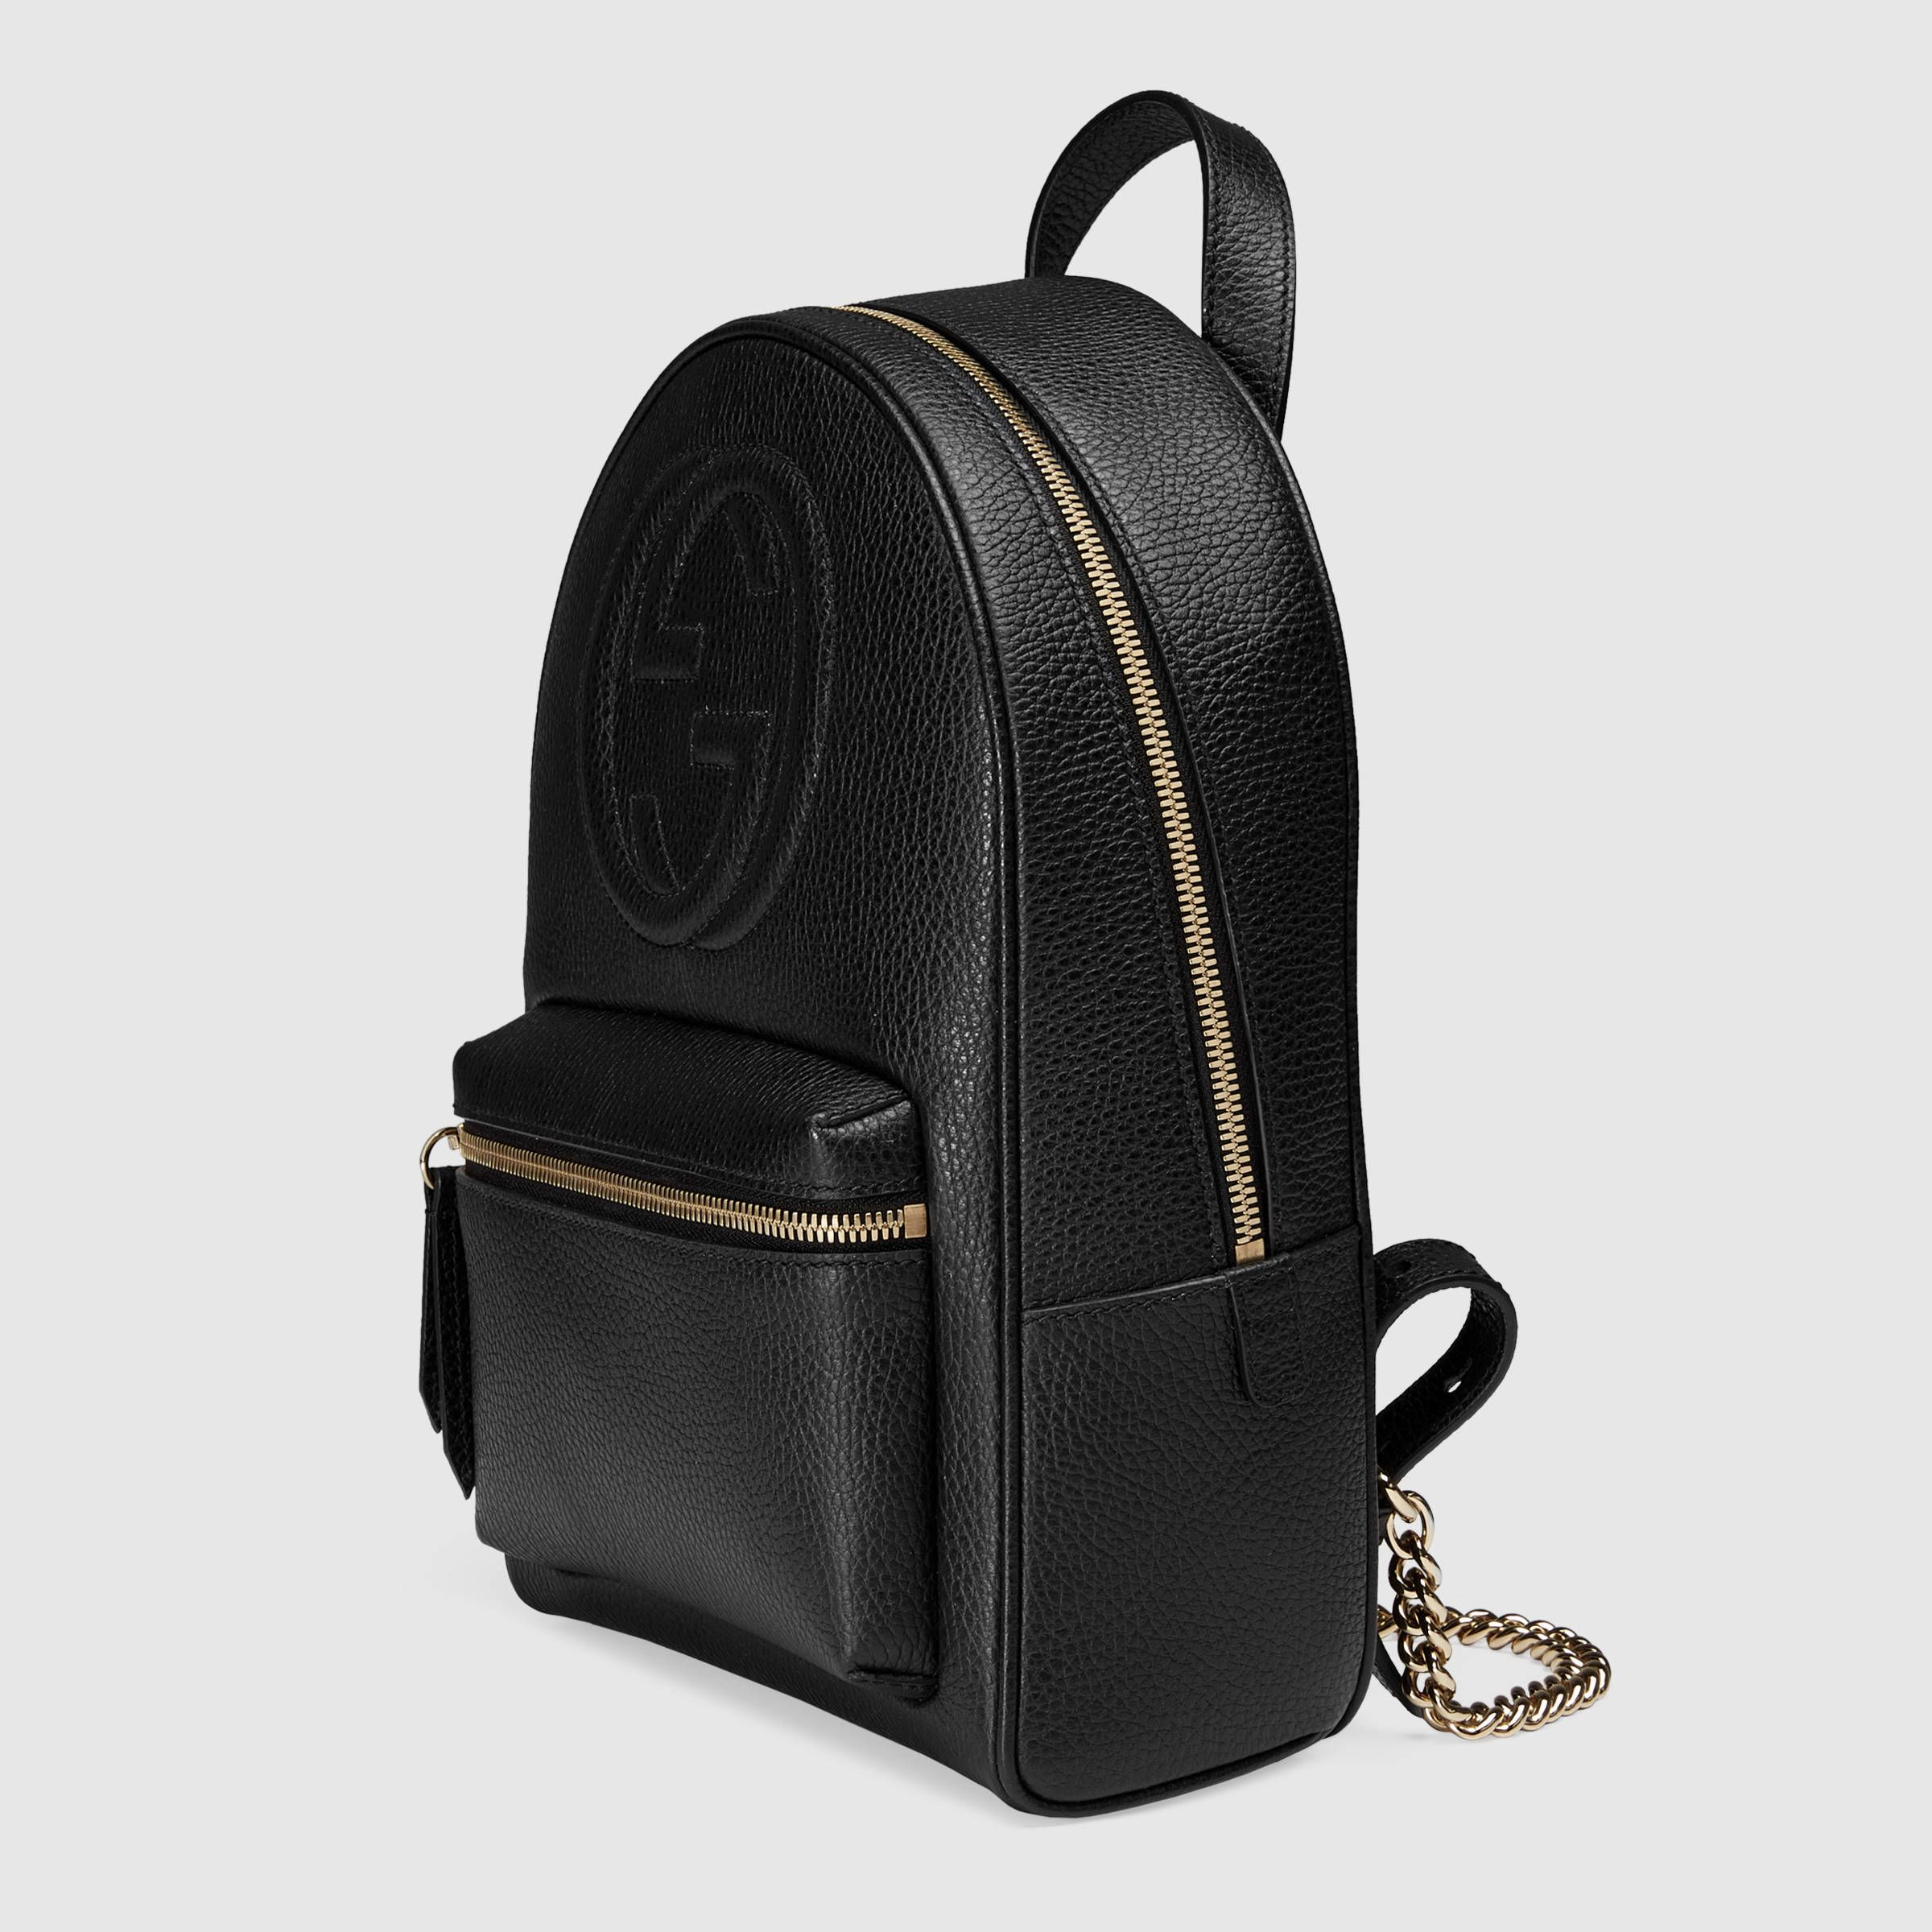 0c47ff32353f Soho leather chain backpack - Gucci Women s Backpacks 431570CAO0G1000